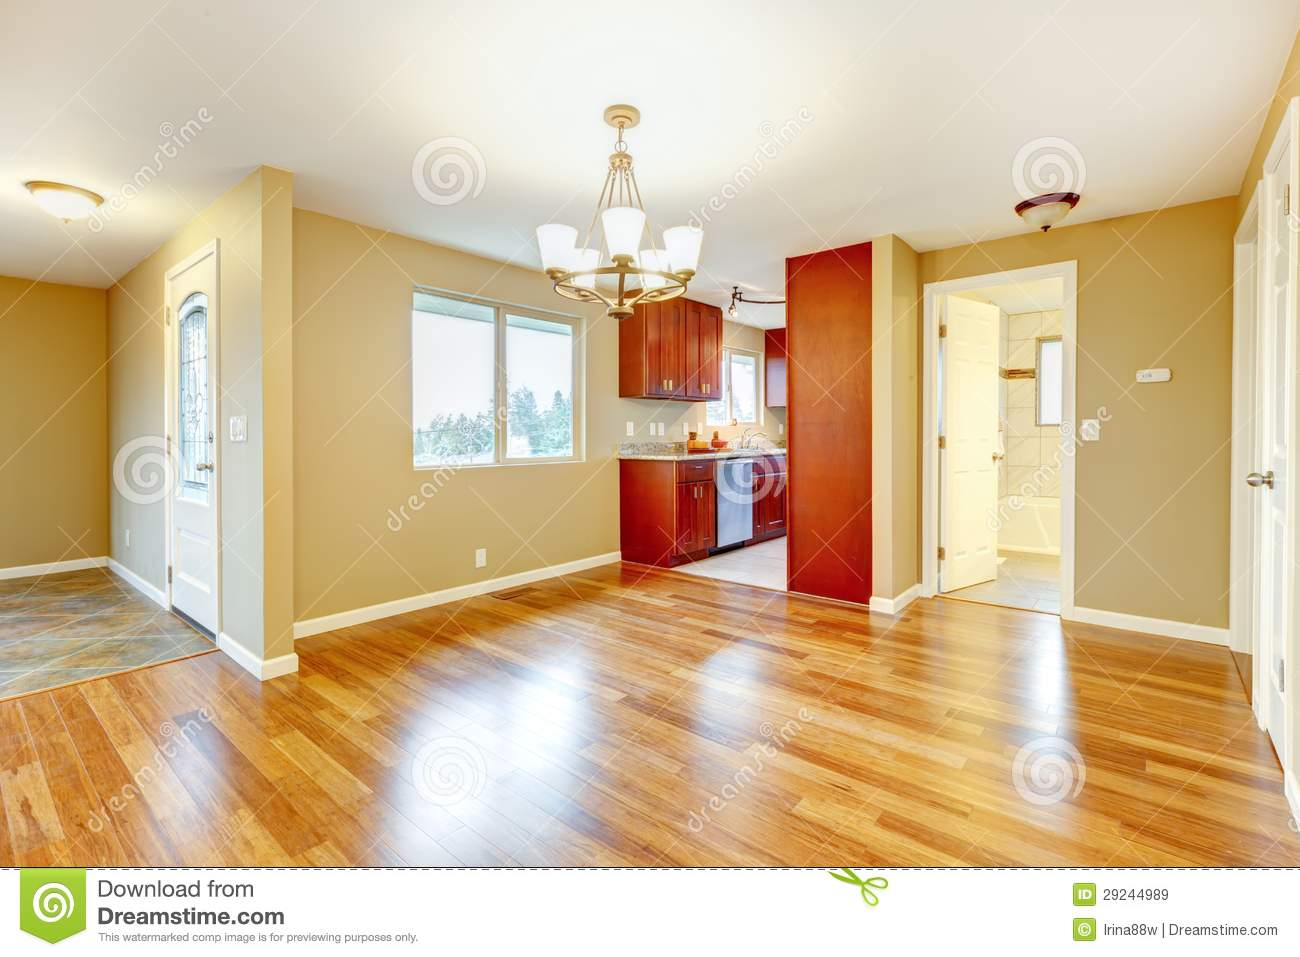 42 Best Images About Dream Dining Rooms And Kitchens On: New Empty Dining Room And Kitchen Interior. Stock Image